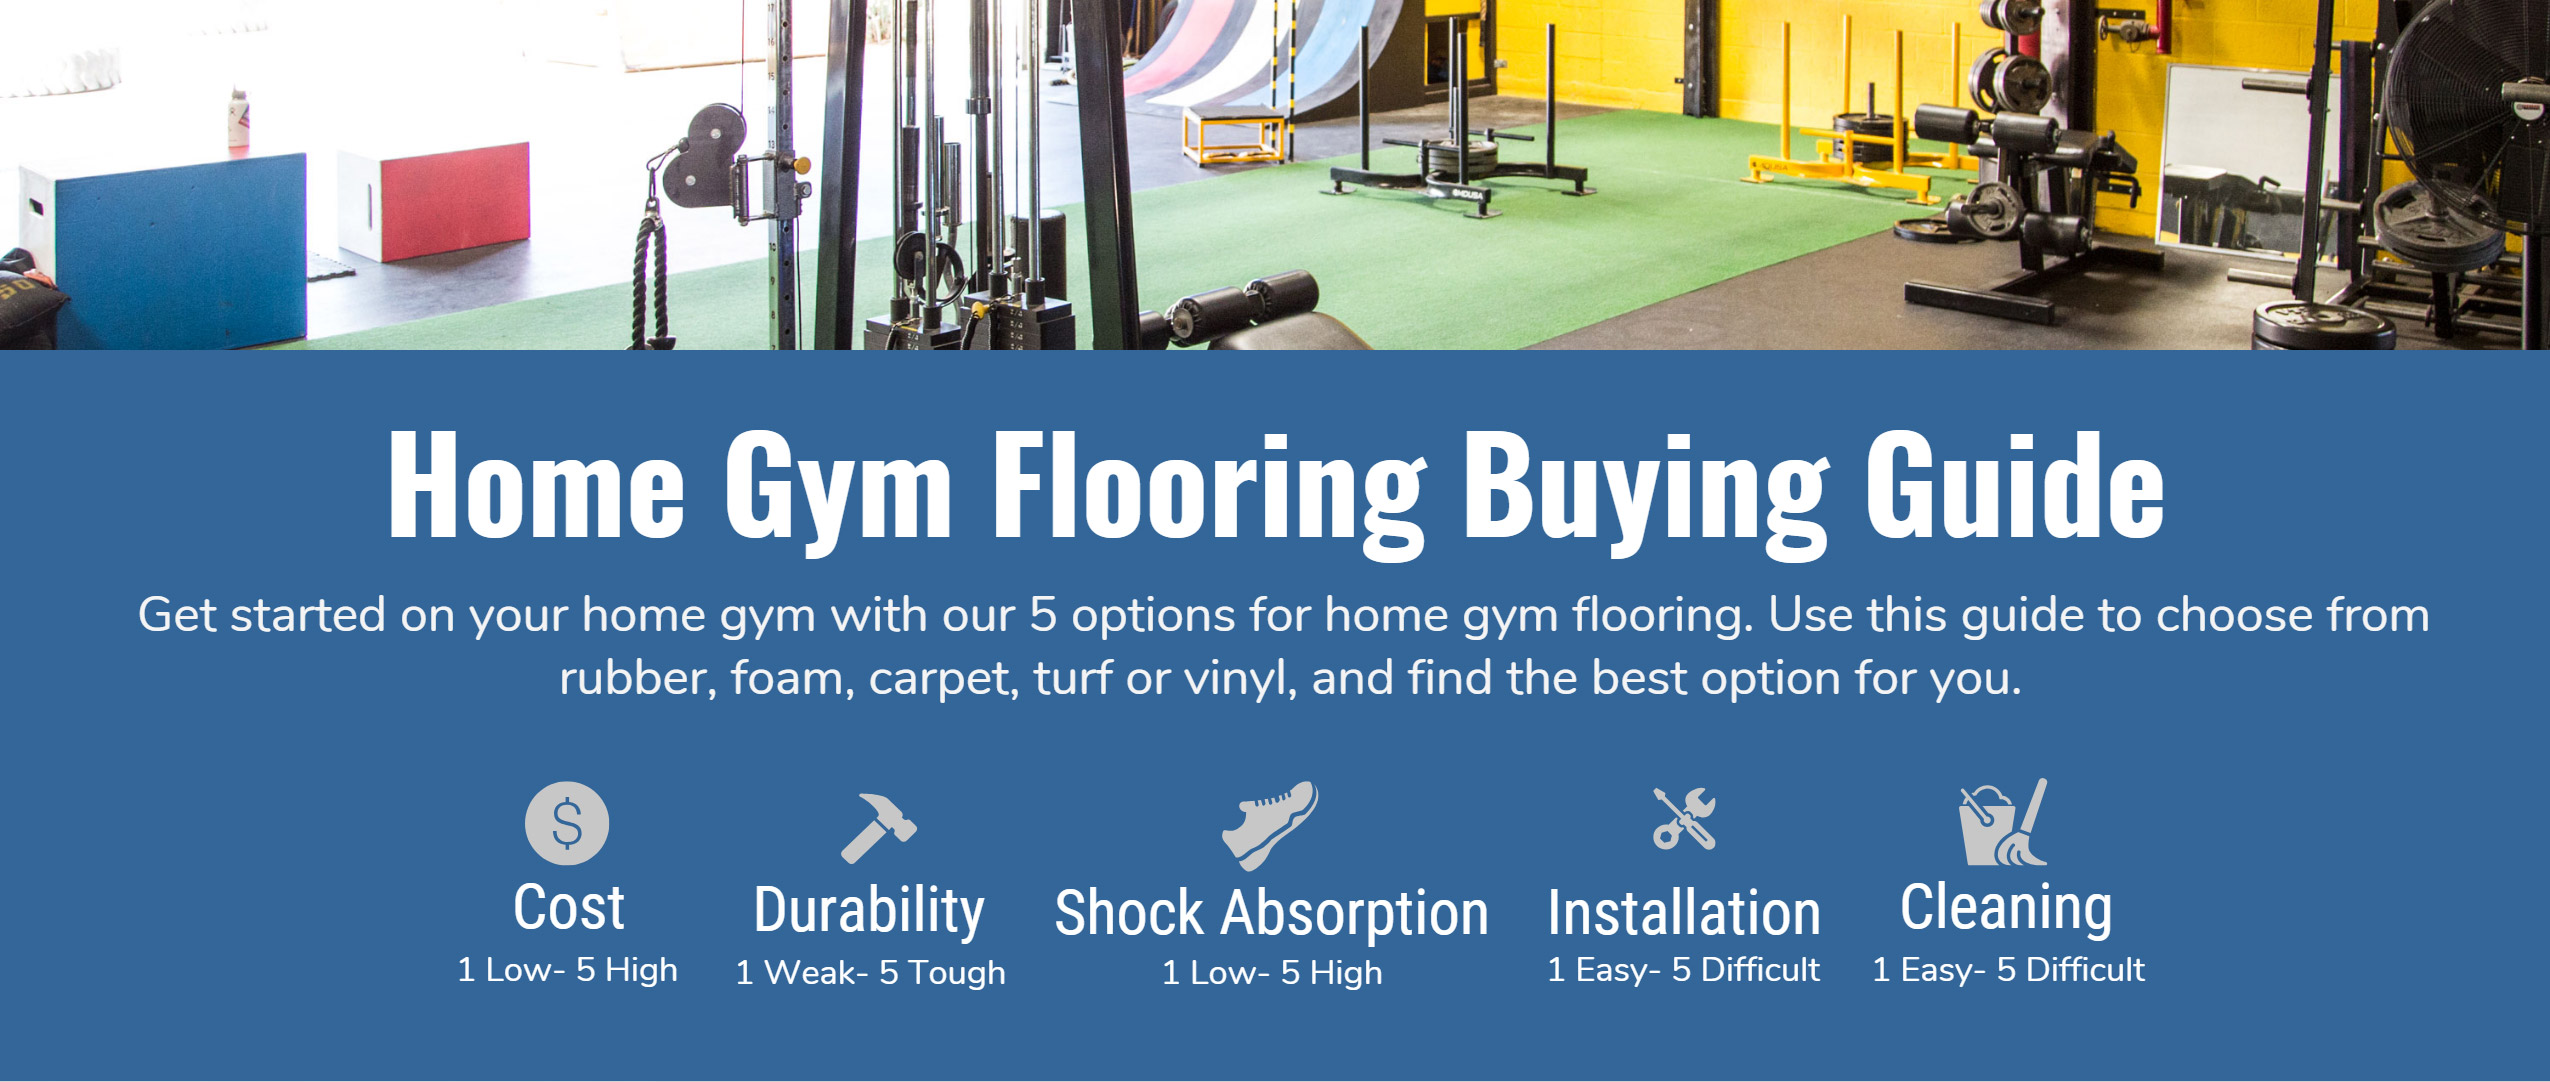 Home Gym Flooring Buyers Guide - How to clean black rubber gym flooring